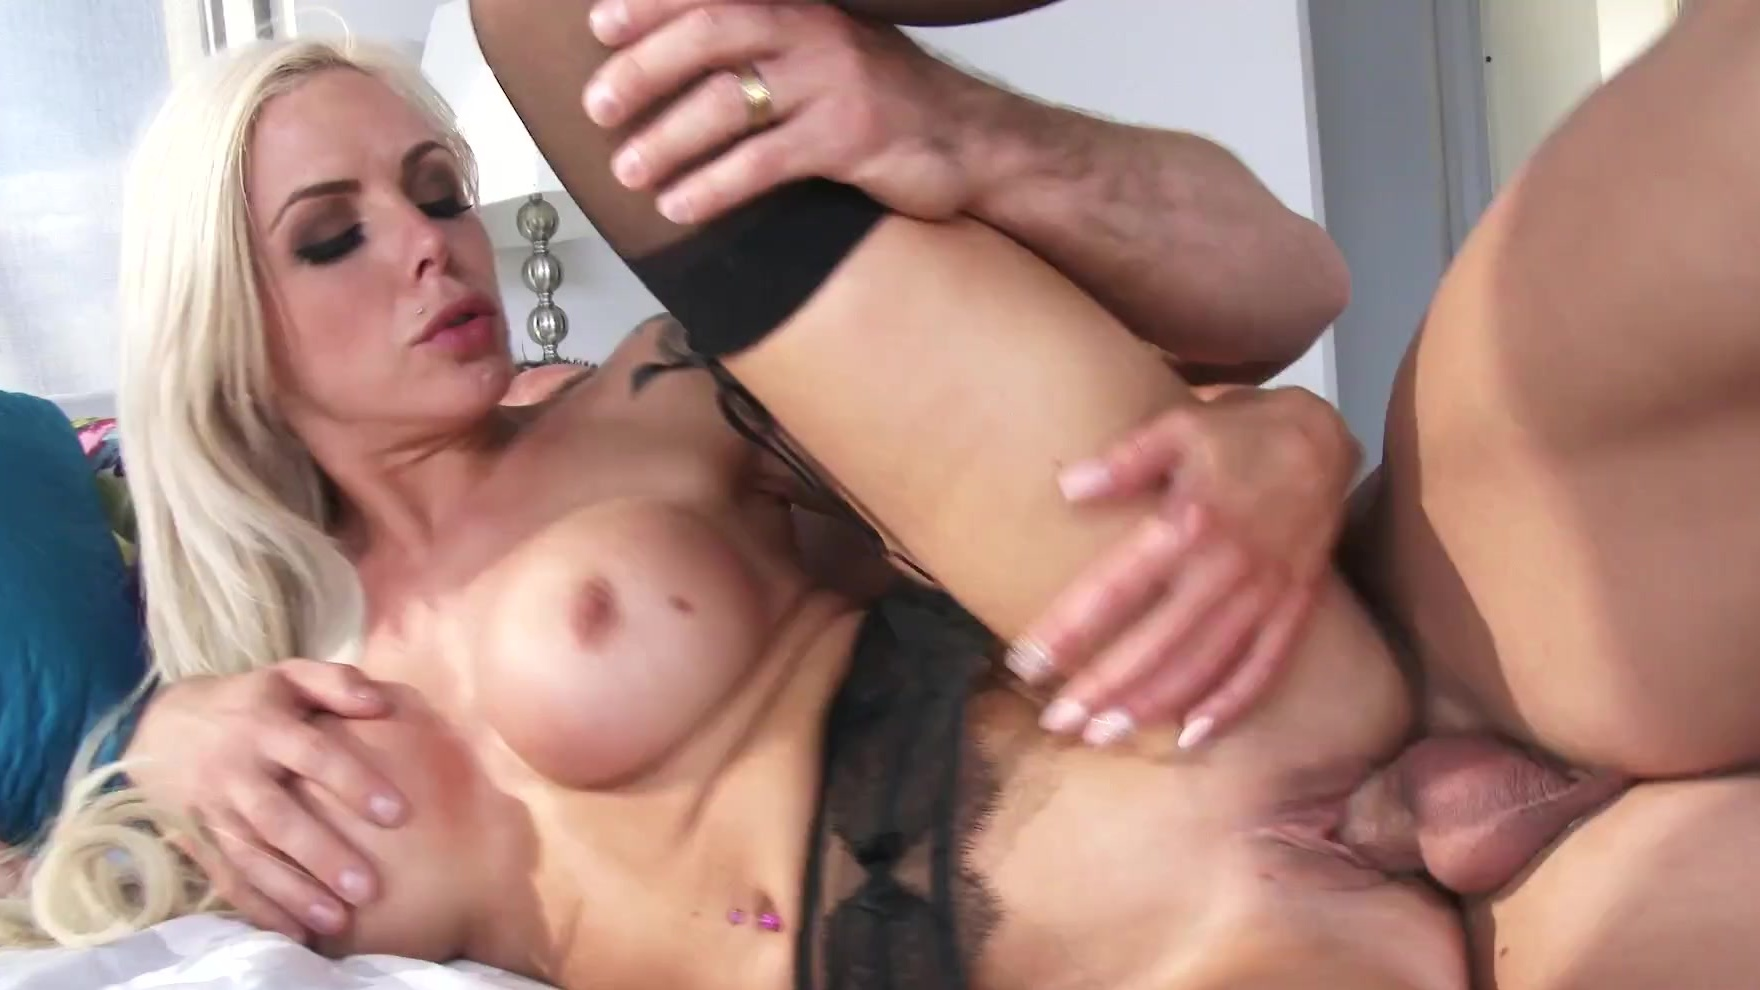 nina elle seducing and getting fucked hardcheating married man